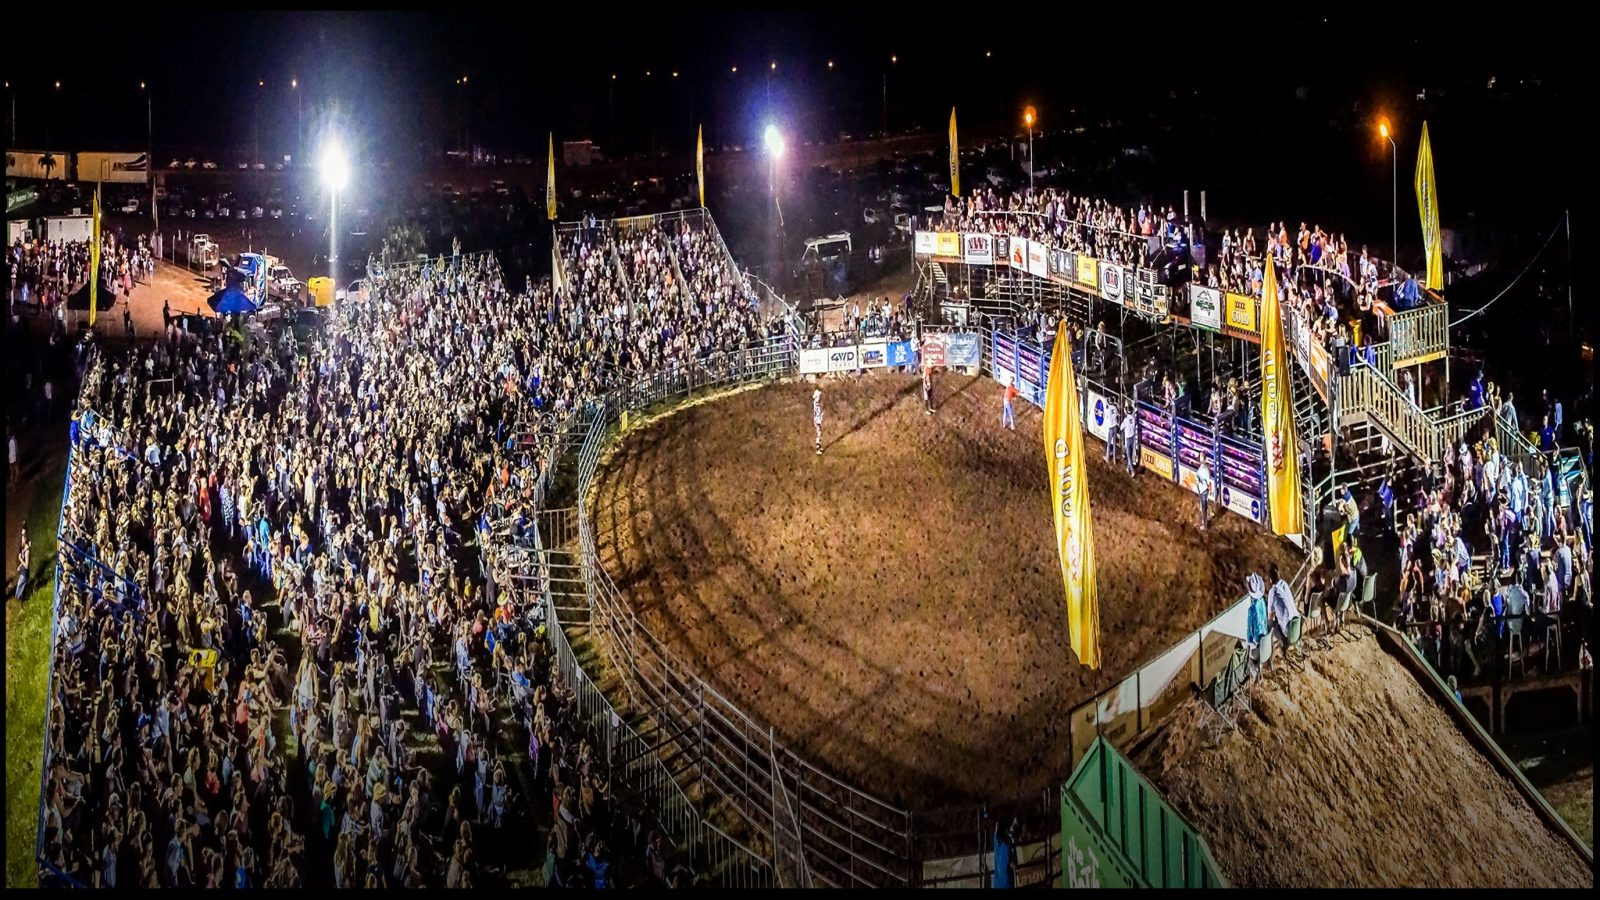 An ariel view of the Rodeo showing the arena in the middle with a large crowd around the outside